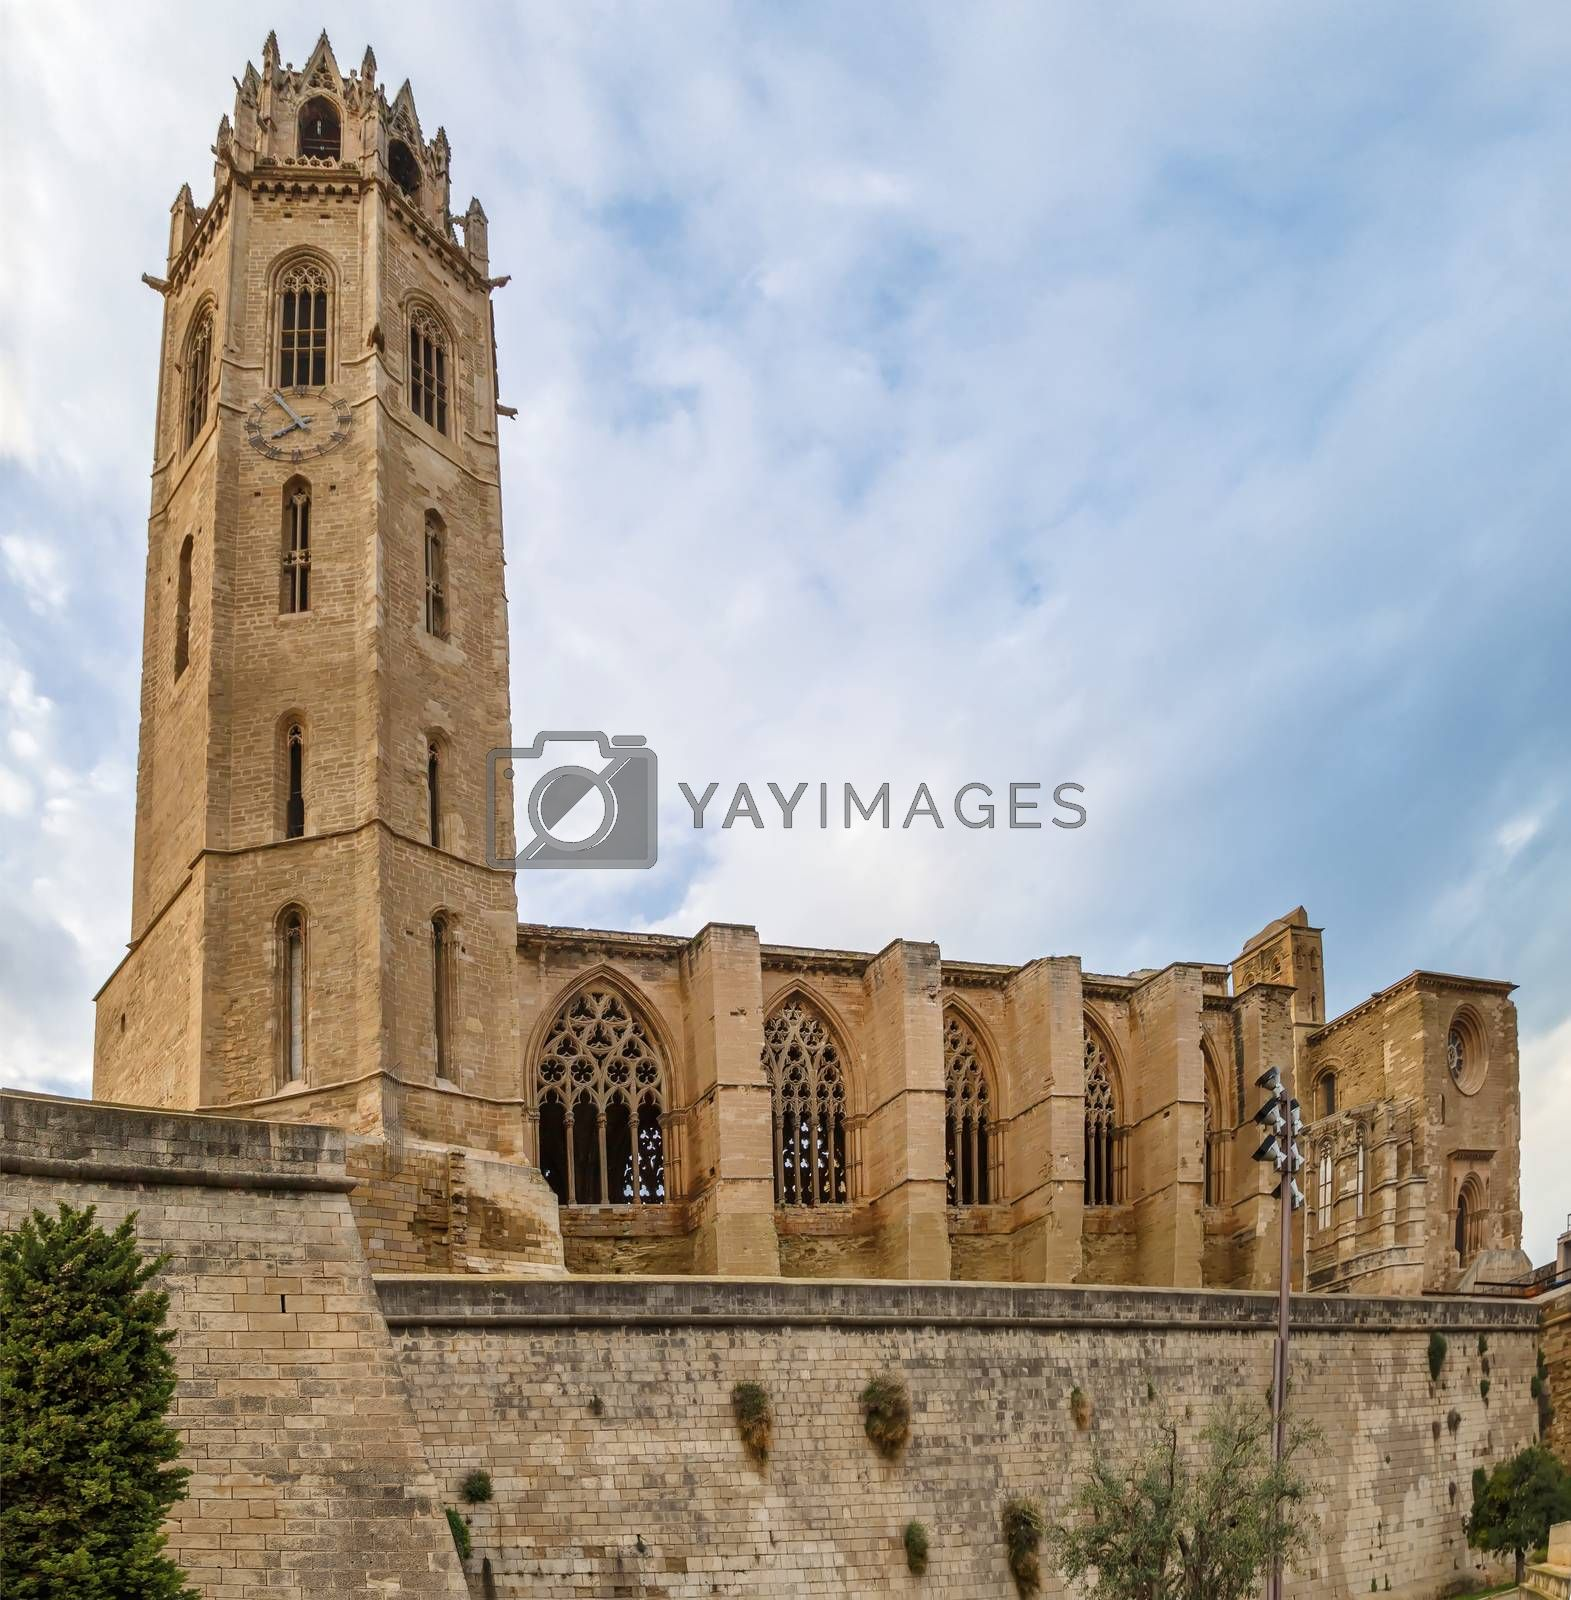 Cathedral of St. Mary of La Seu Vella is the former cathedral church of the Roman Catholic Diocese of Lleida, in Lleida, Catalonia, Spain